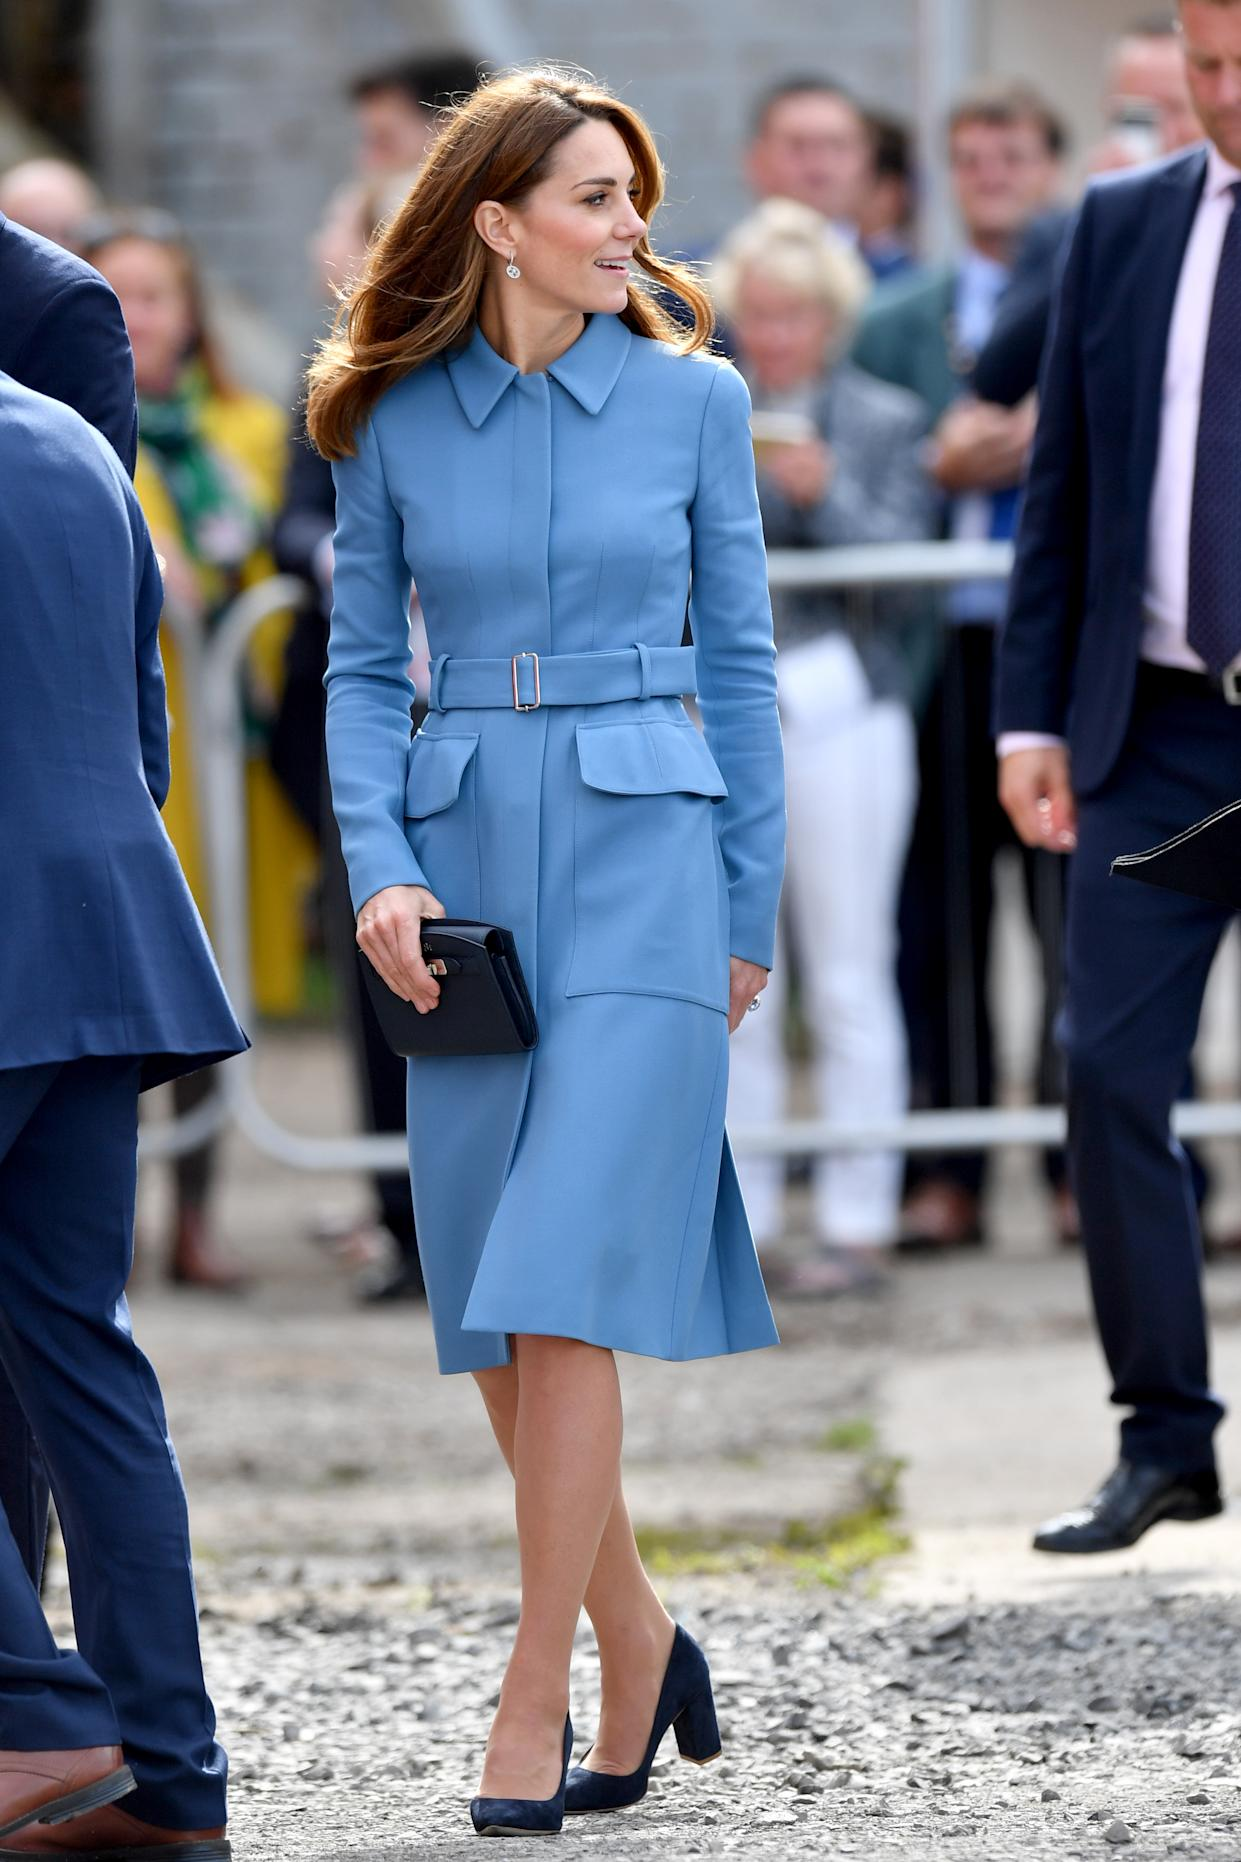 The Duchess of Cambridge opted to rewear her powder blue Alexander McQueen Utility Coat in Birkenhead [Photo: Getty Images]